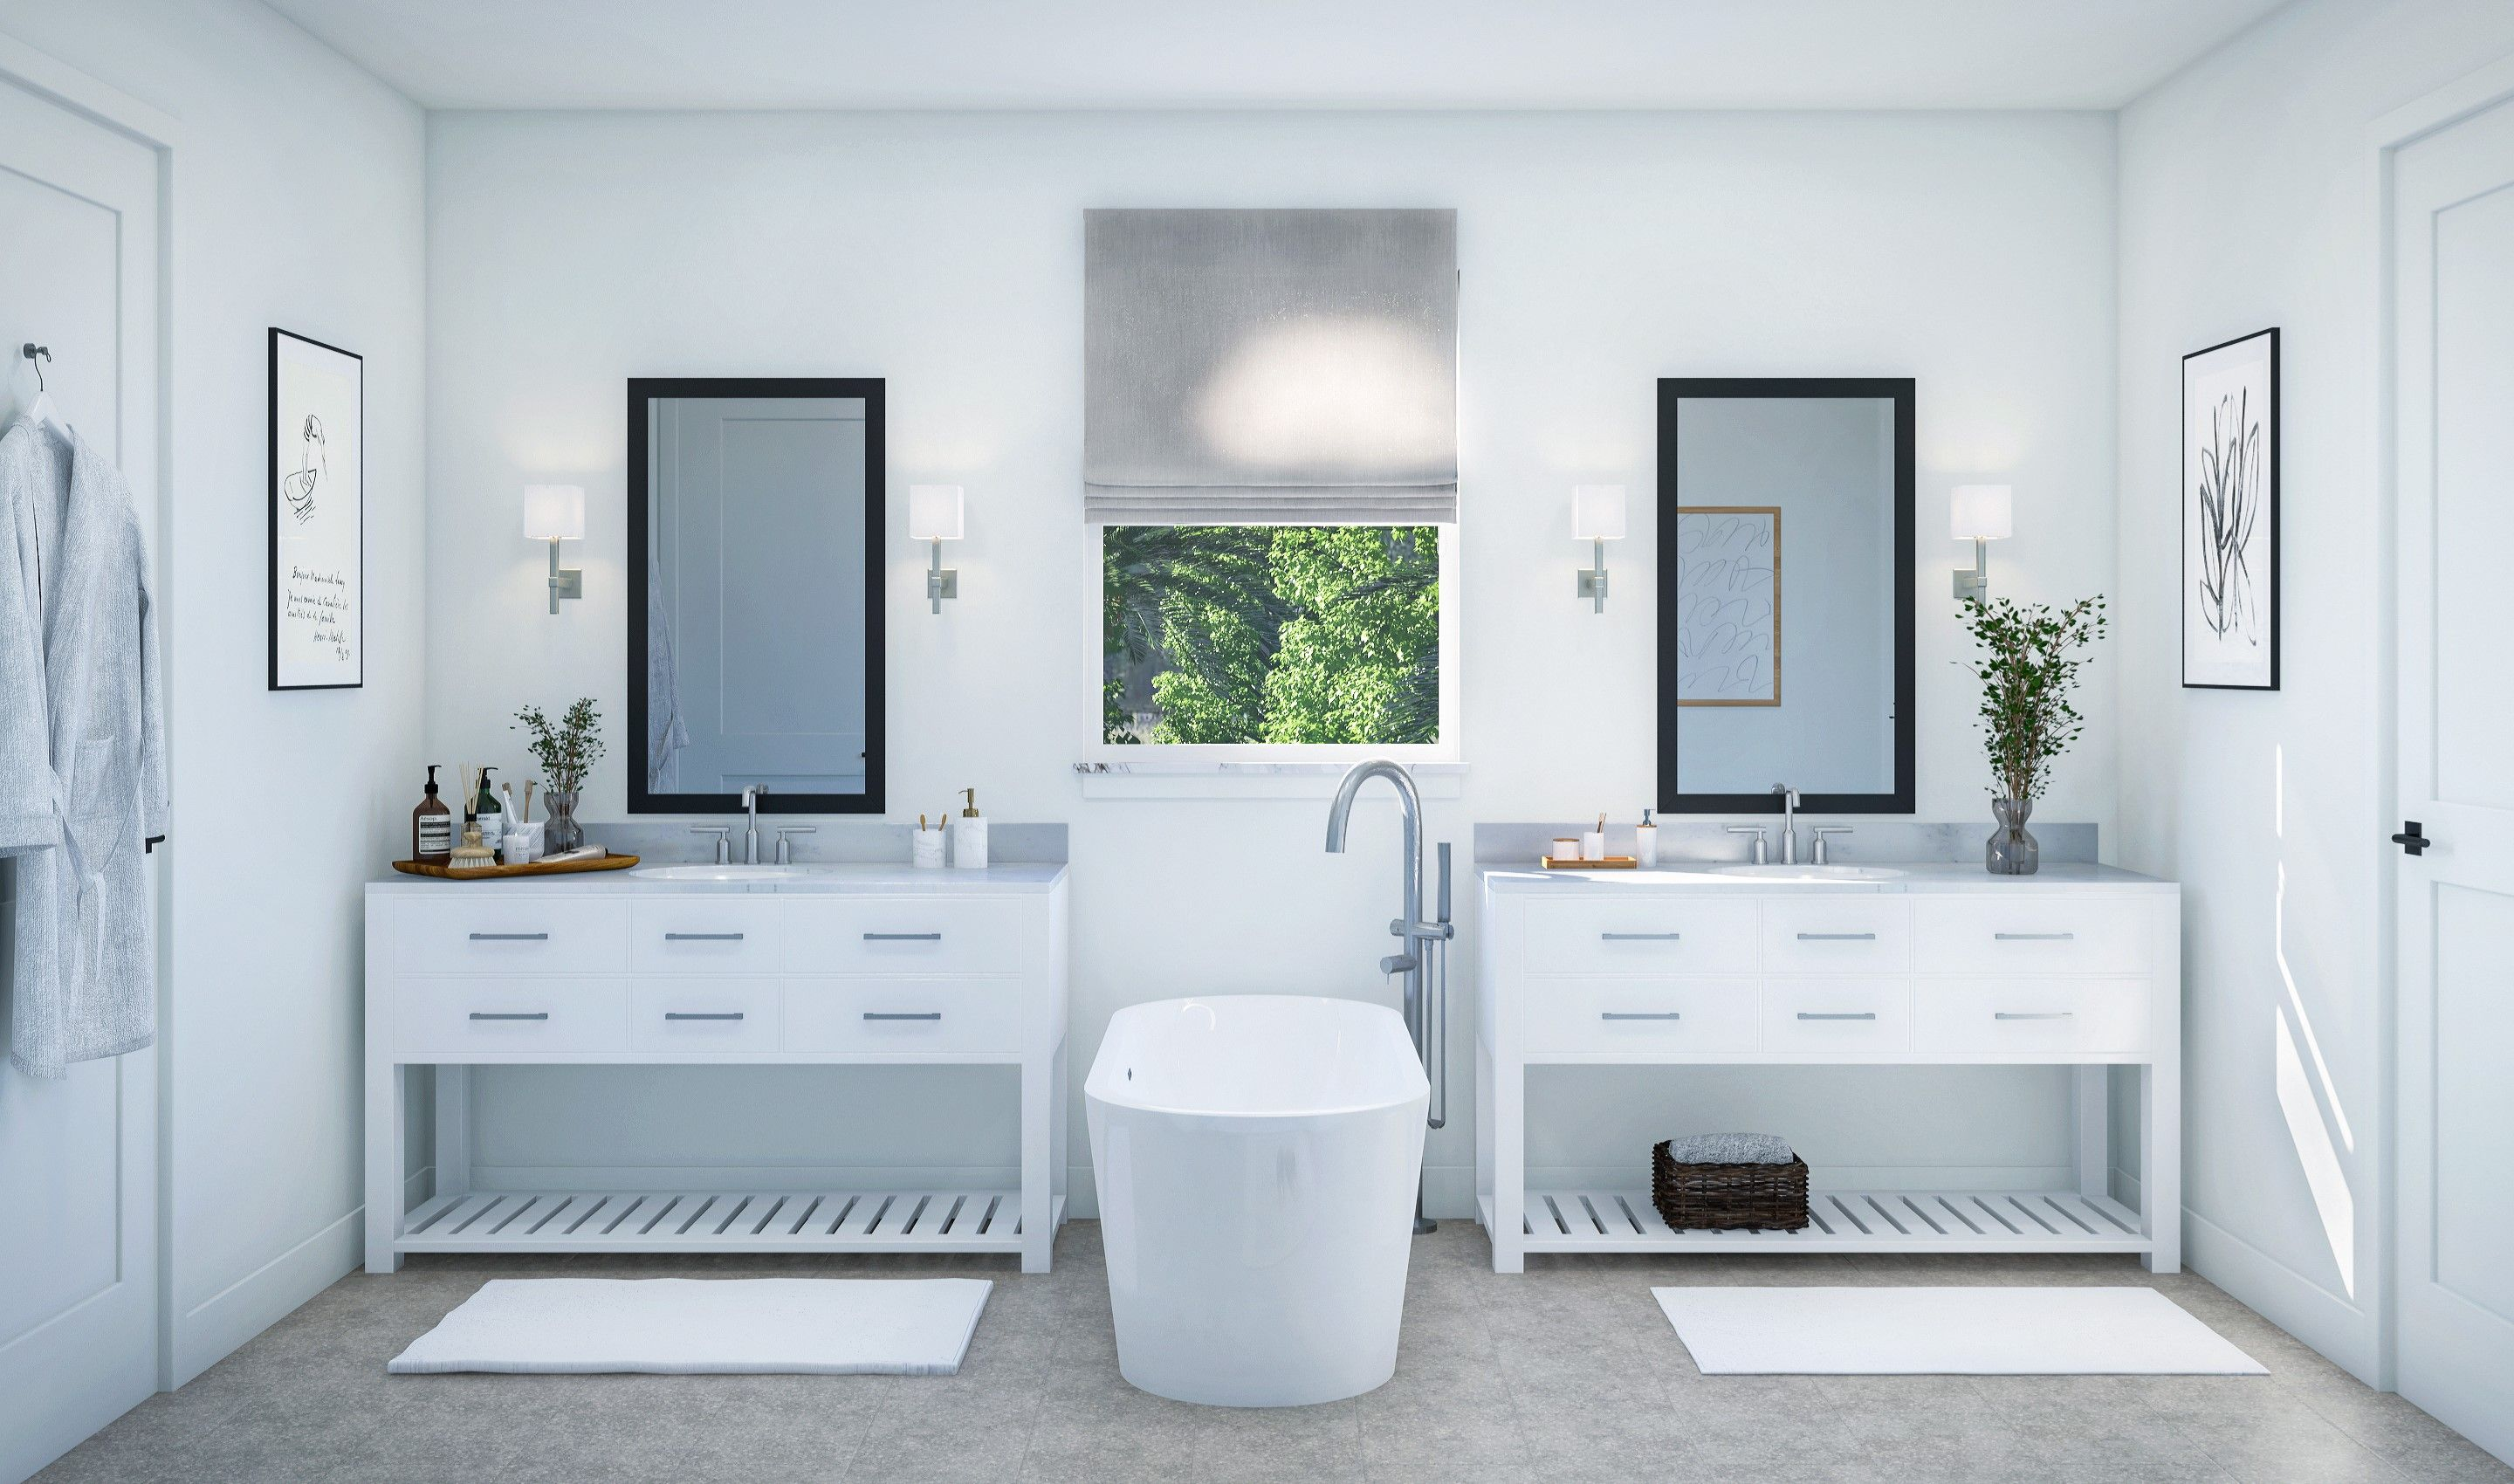 Bathroom featured in the Rosada II By K. Hovnanian® Homes in Palm Beach County, FL